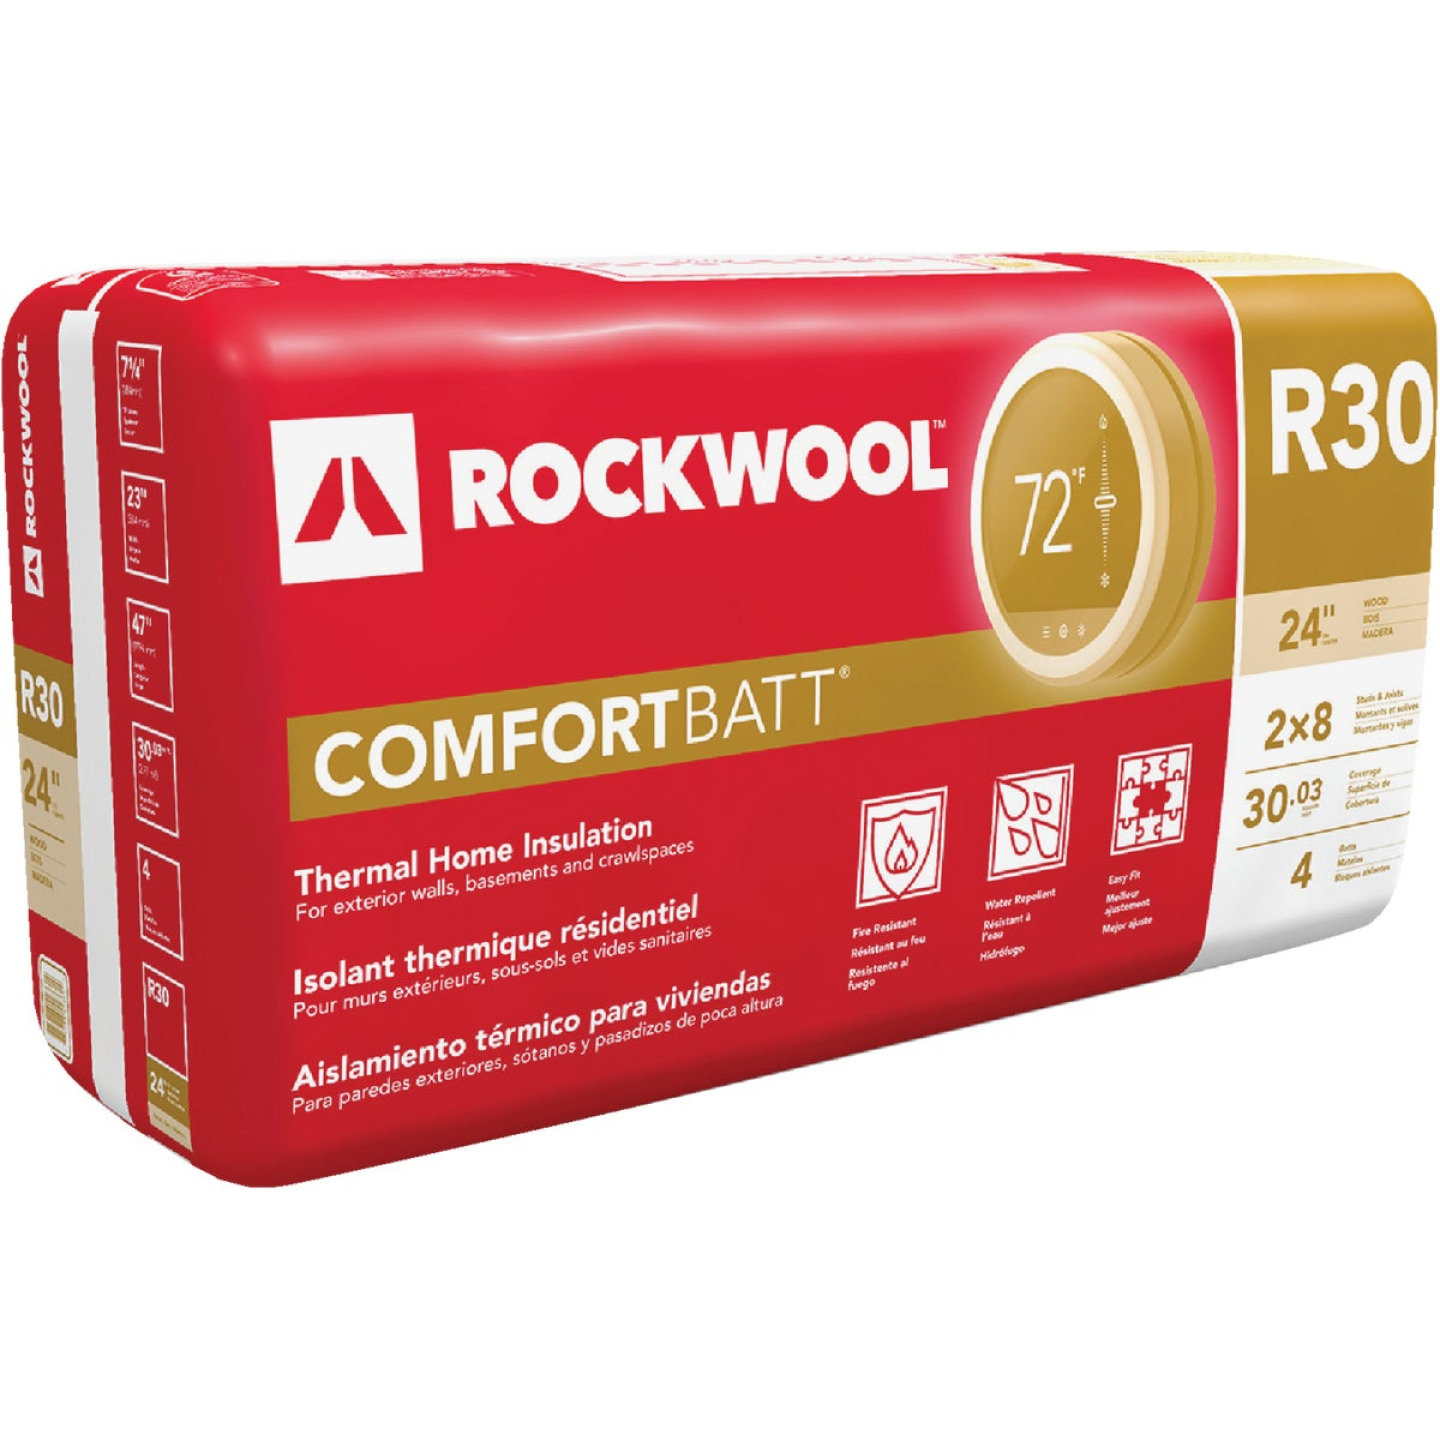 Rockwool Comfortbatt R-30 24 In. x 47 In. Stone Wool Insulation (4-Pack) Image 1